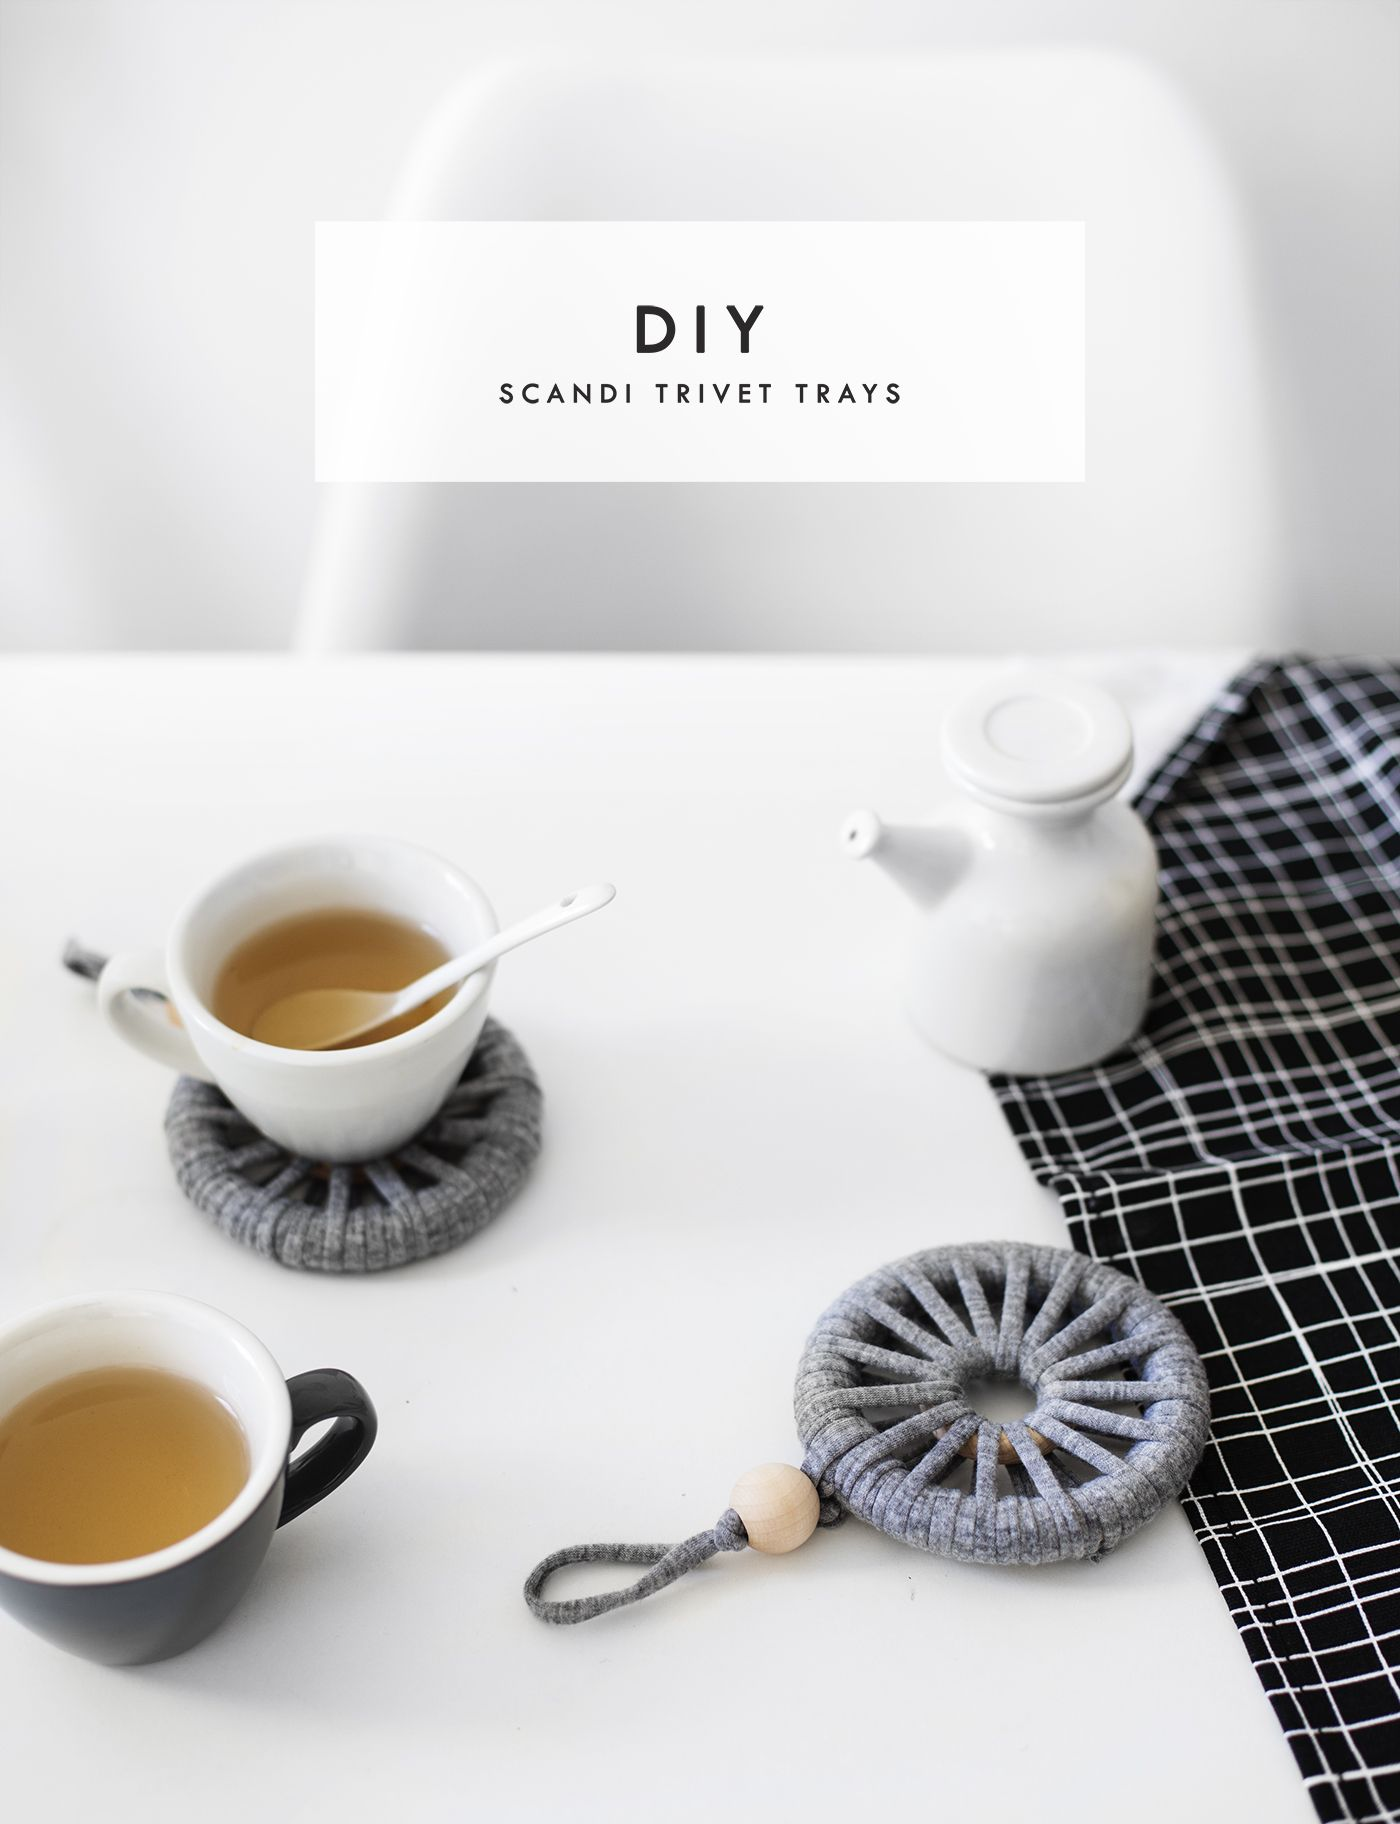 Scandi tableware | Pinterest | Scandinavian trivets, Trays and Tutorials